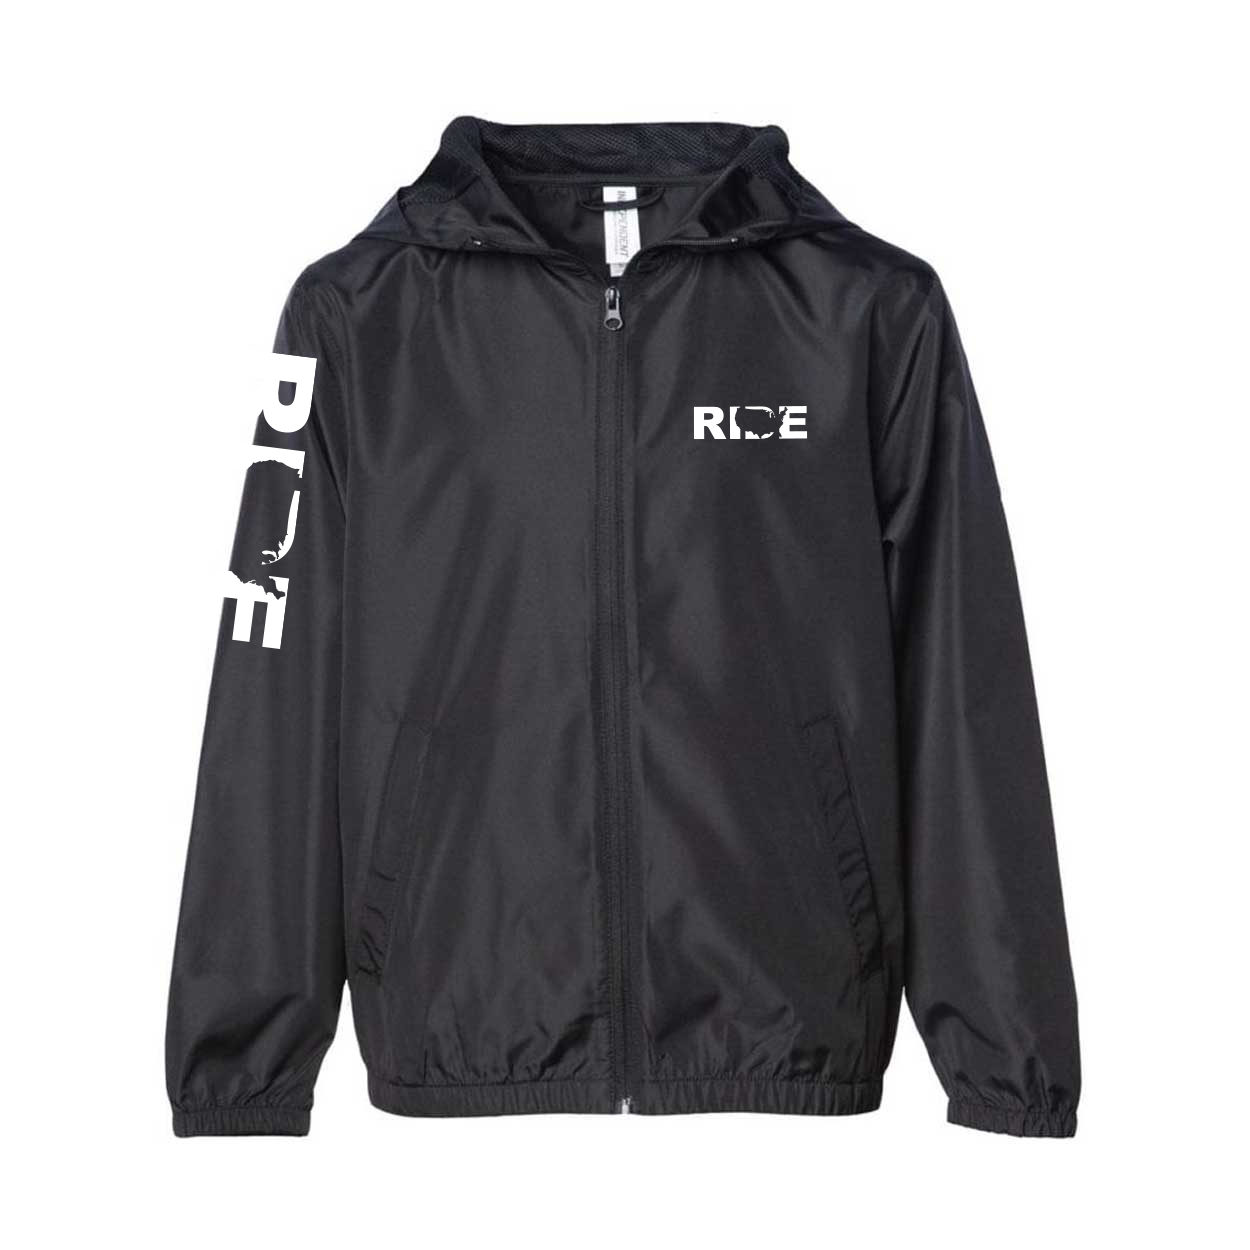 Ride United States Classic Youth Lightweight Windbreaker Black (White Logo)